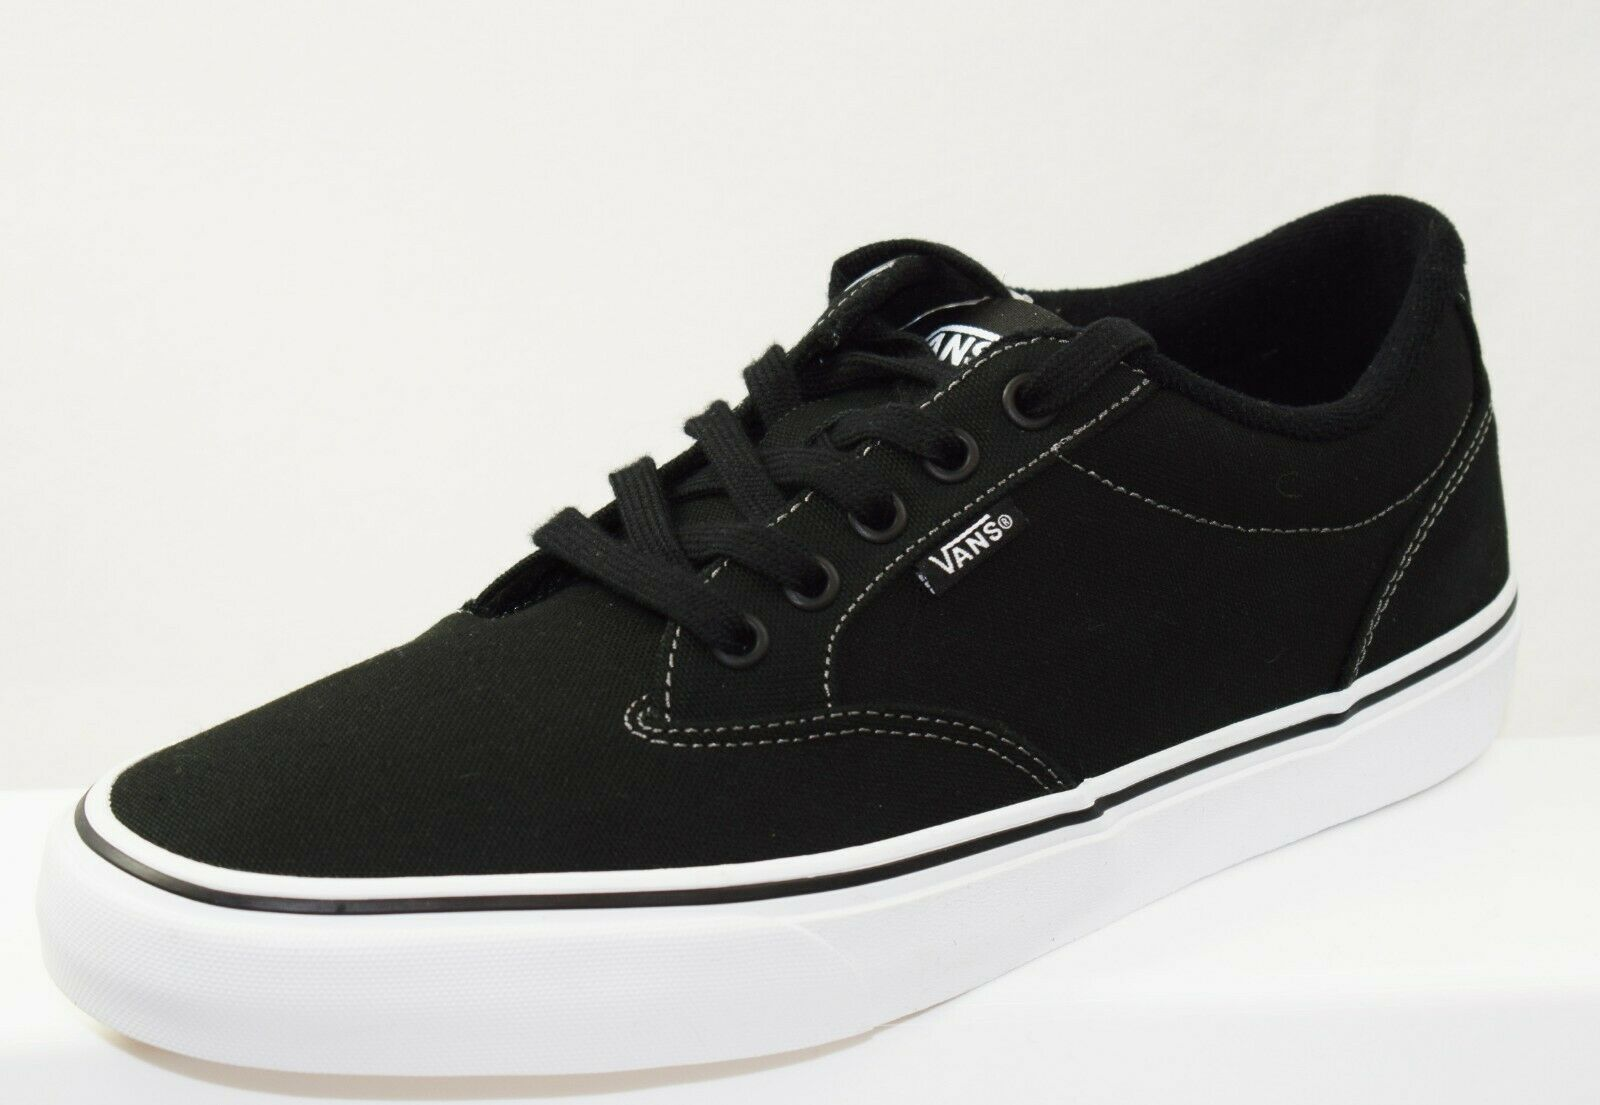 VANS WINSTON MEN'S SHOES BRAND NEW SIZE UK 8 (BU6)